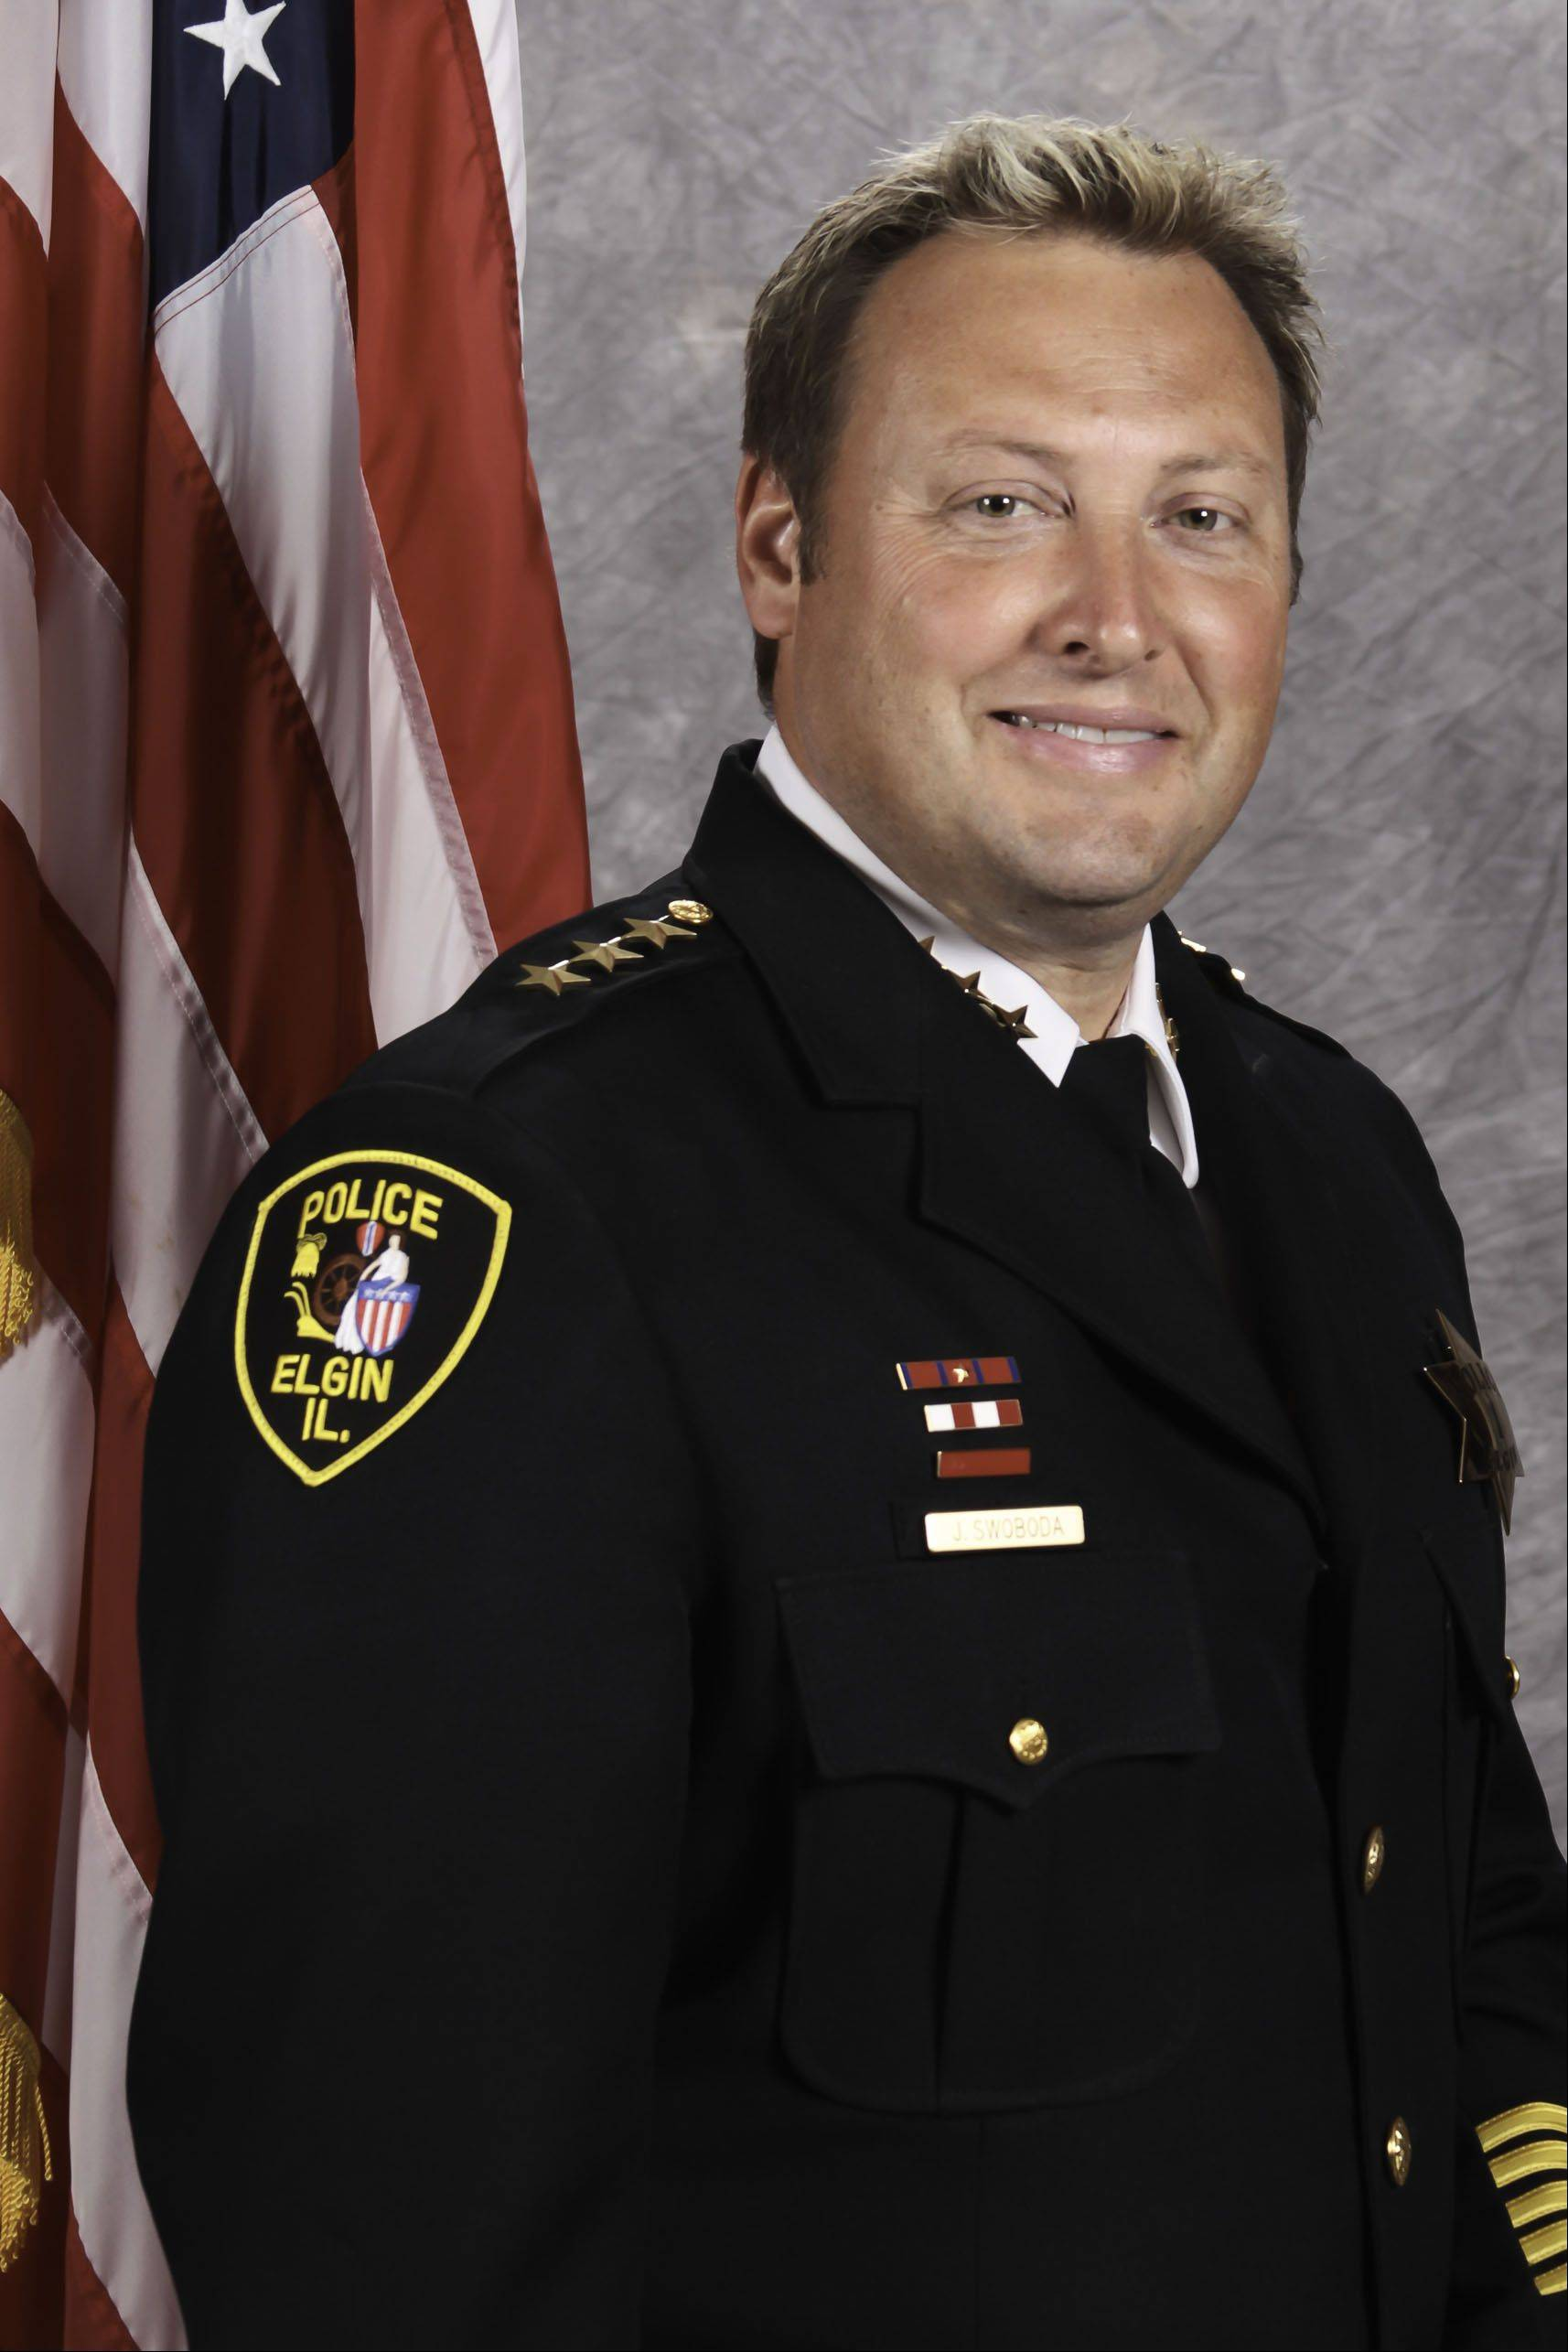 Elgin Police Chief Jeff Swoboda